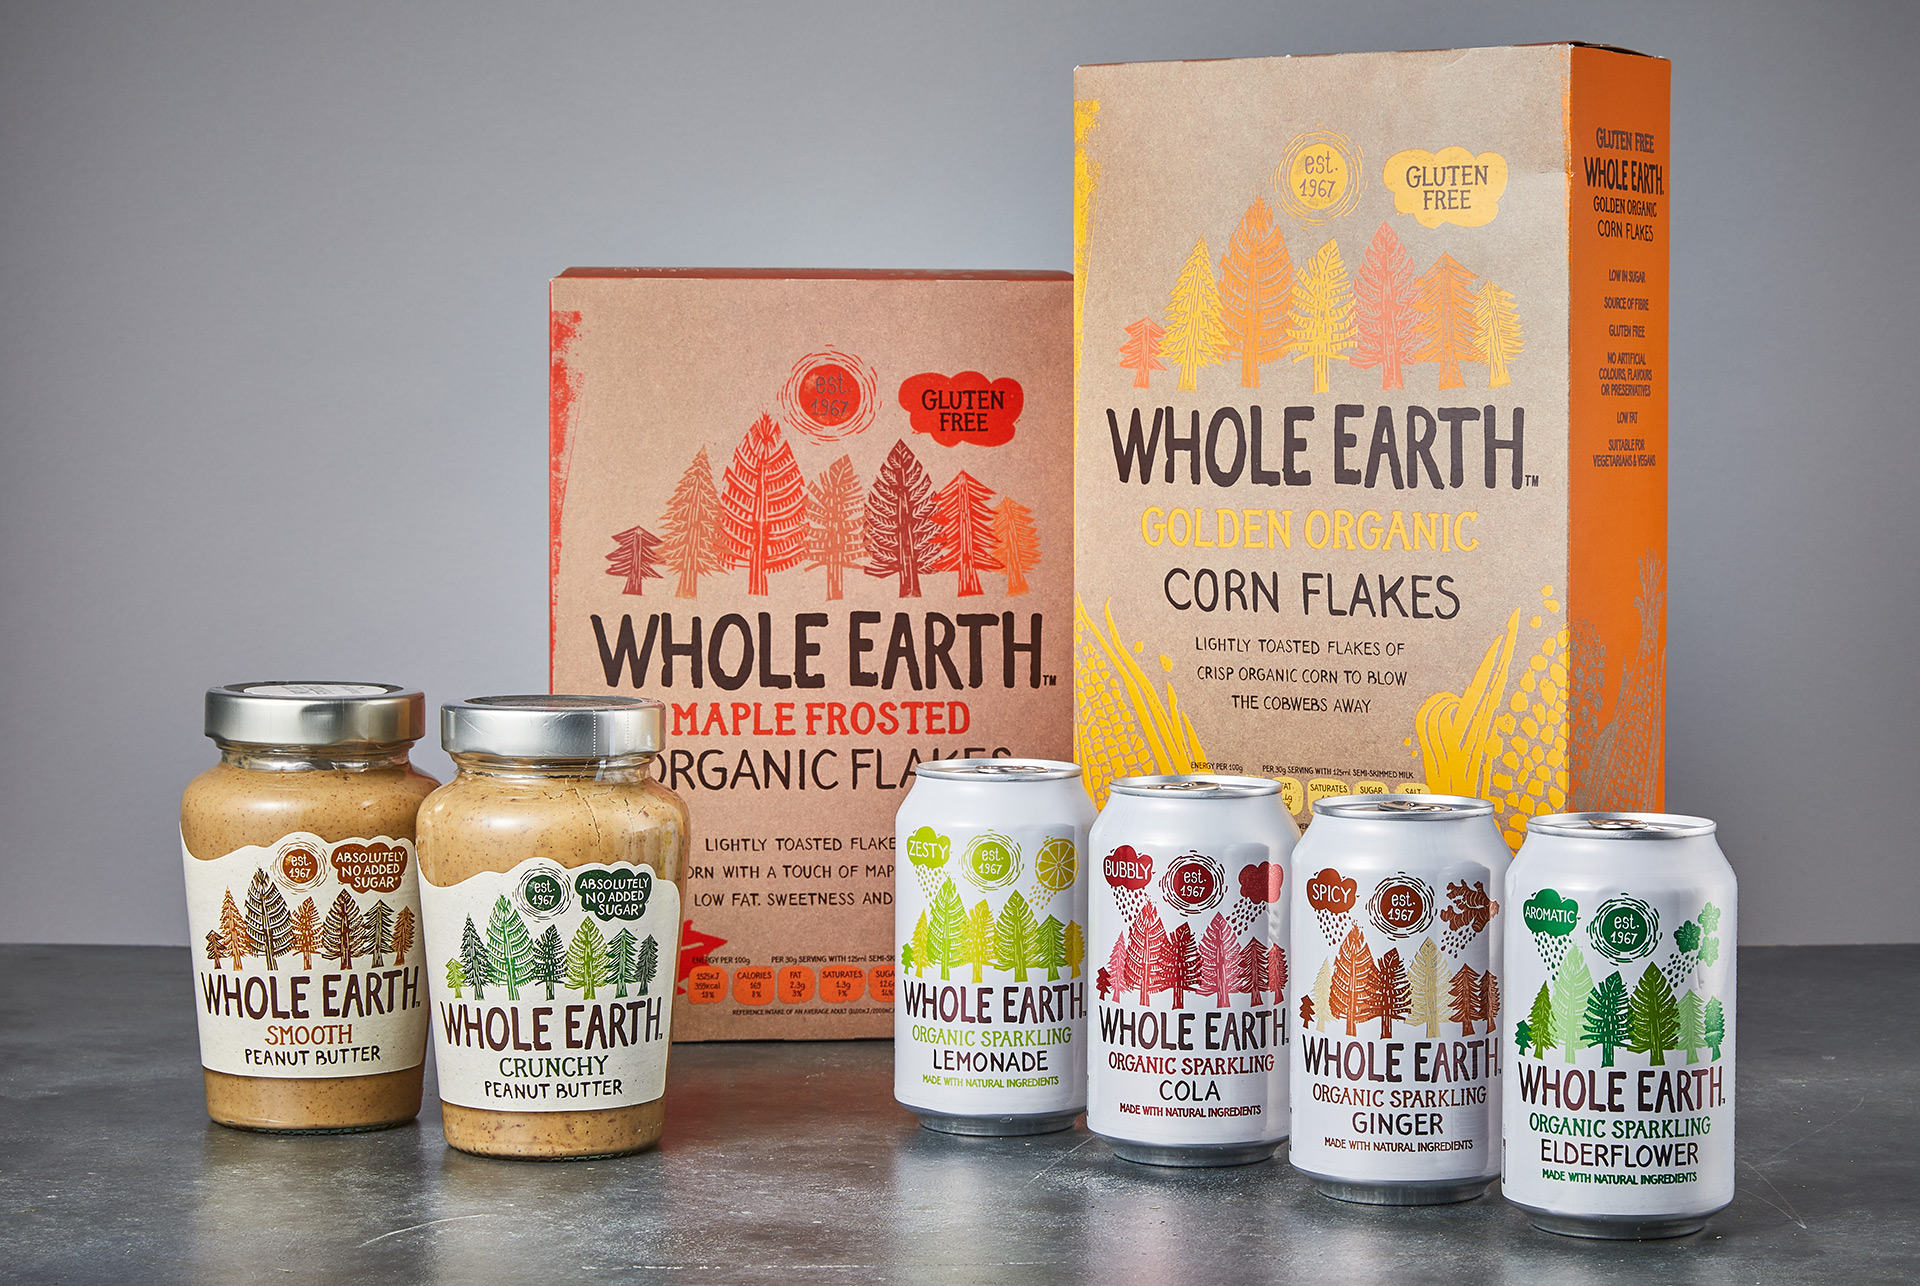 Whole_Earth_Food_Packaging_Repro_Artwork